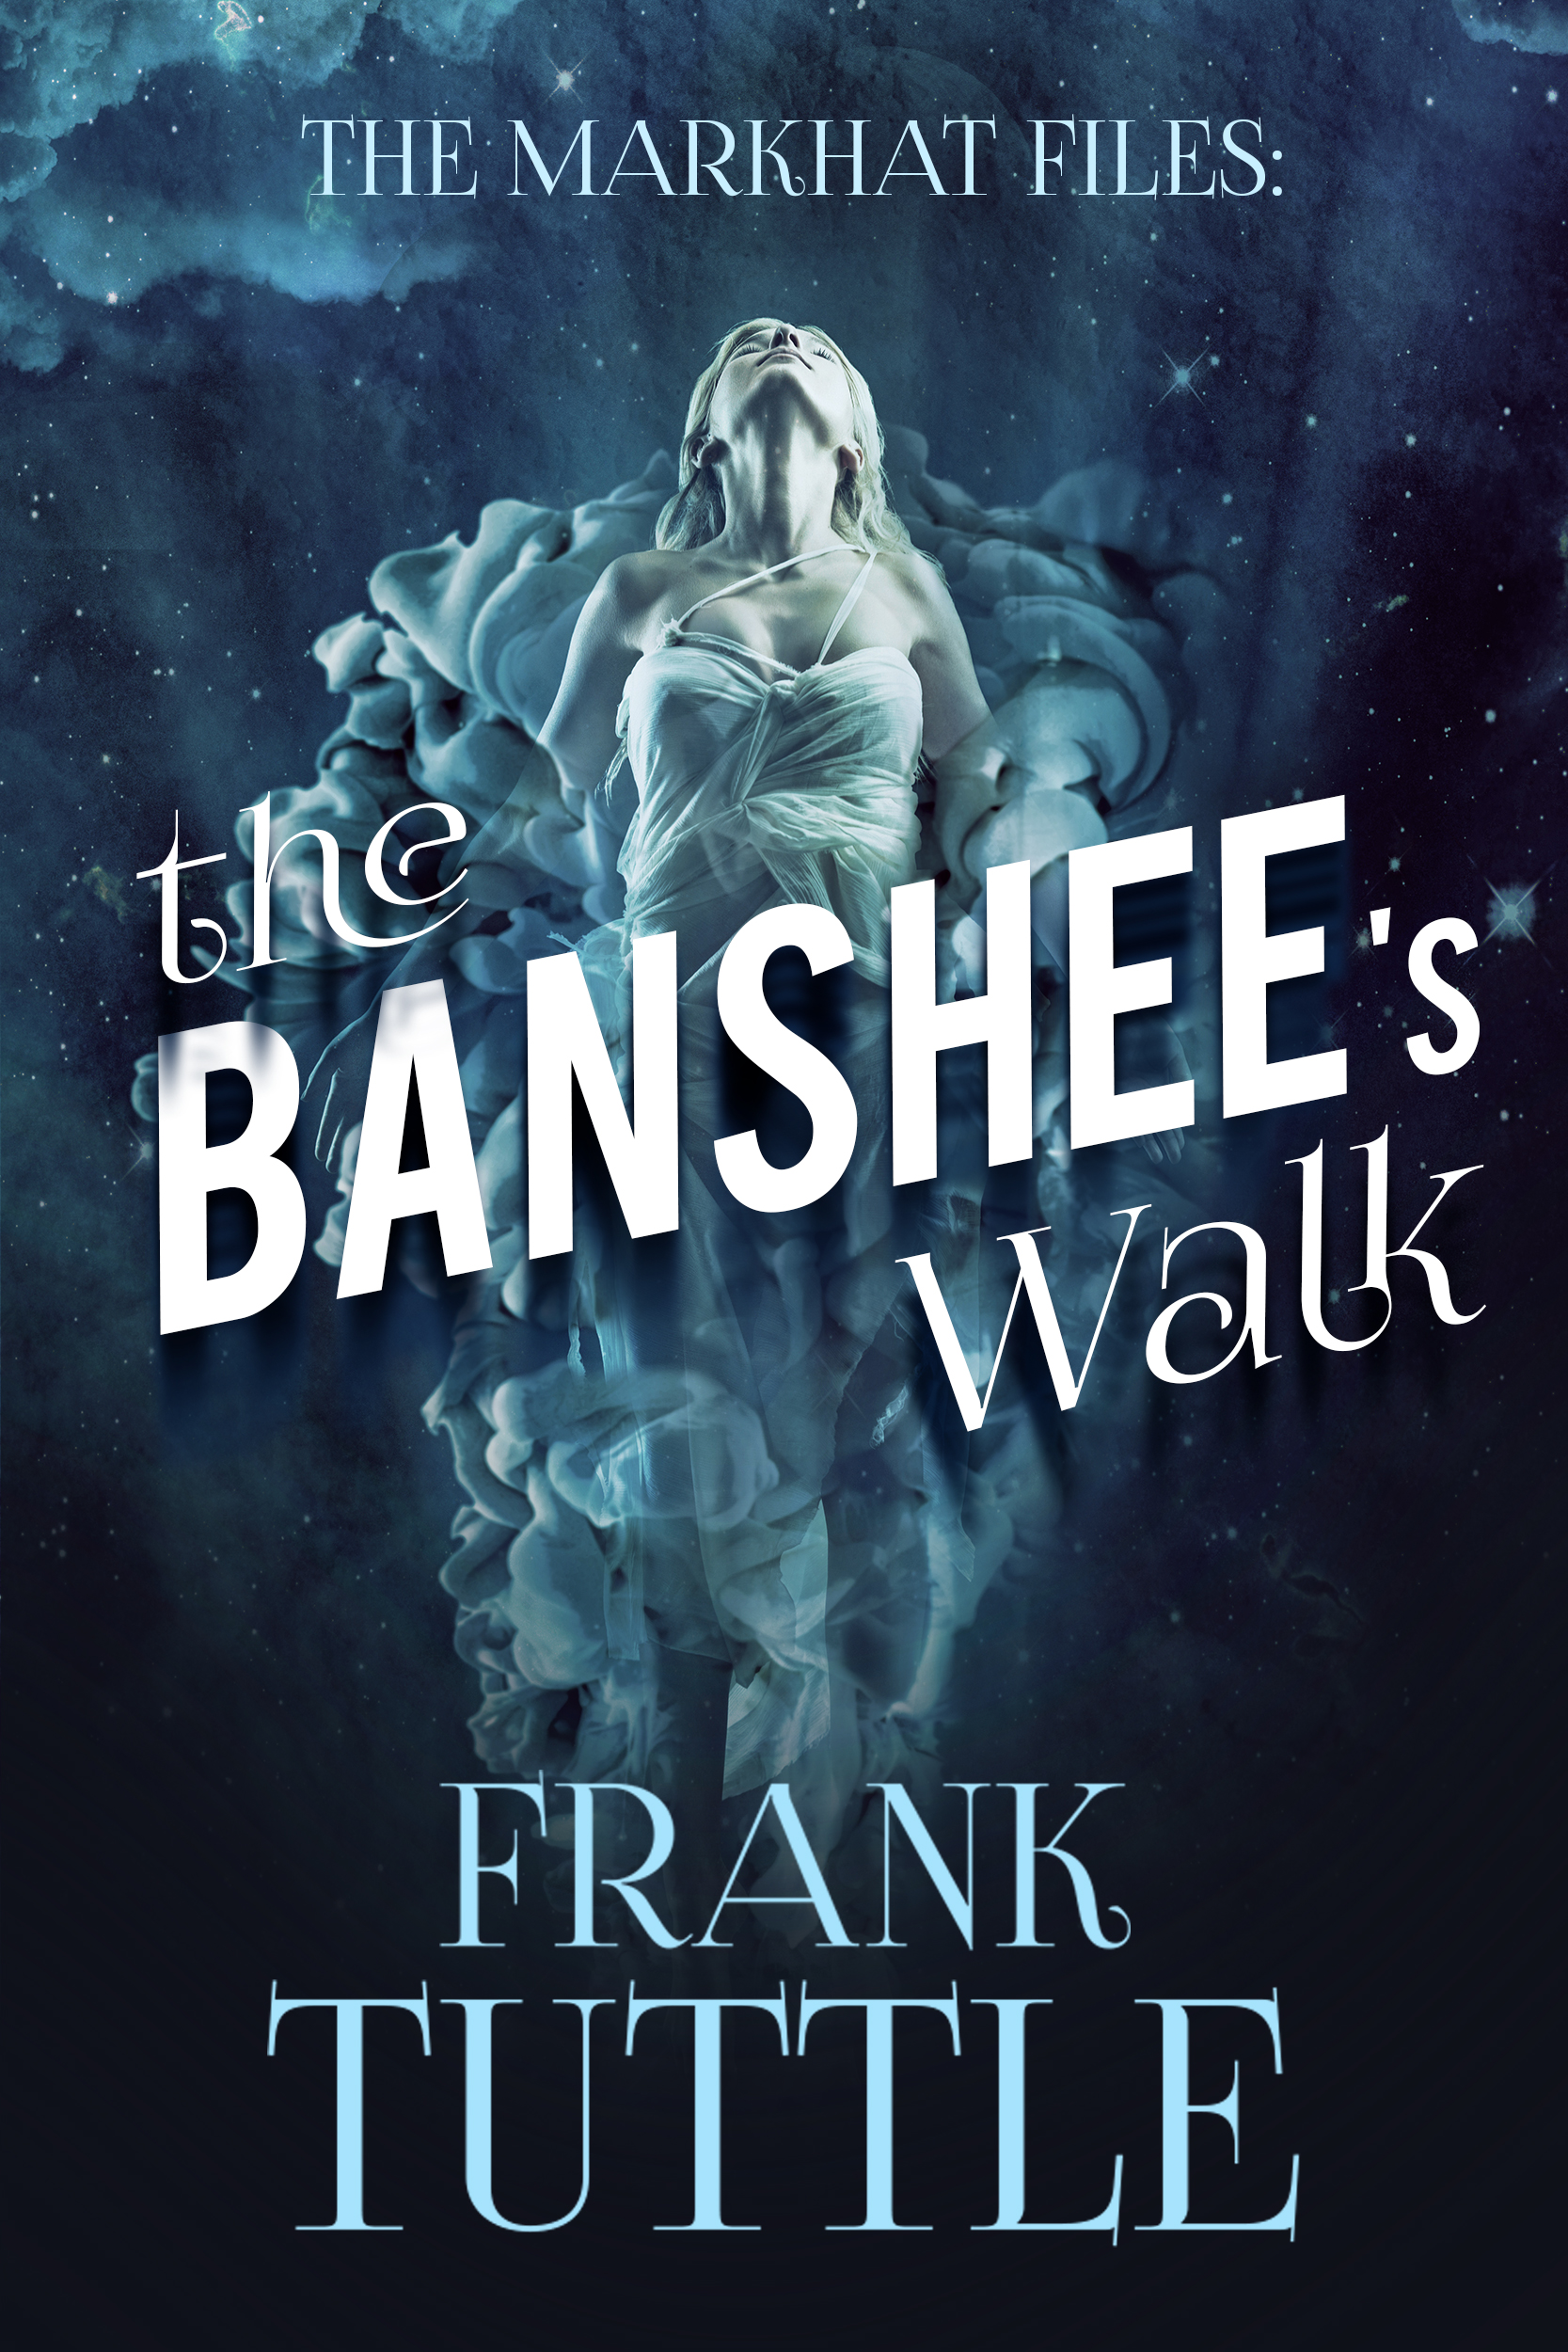 [FT-2017-002]-FT-The-Banshee's-Walk-E-Book-Cover--1667x2500.jpg